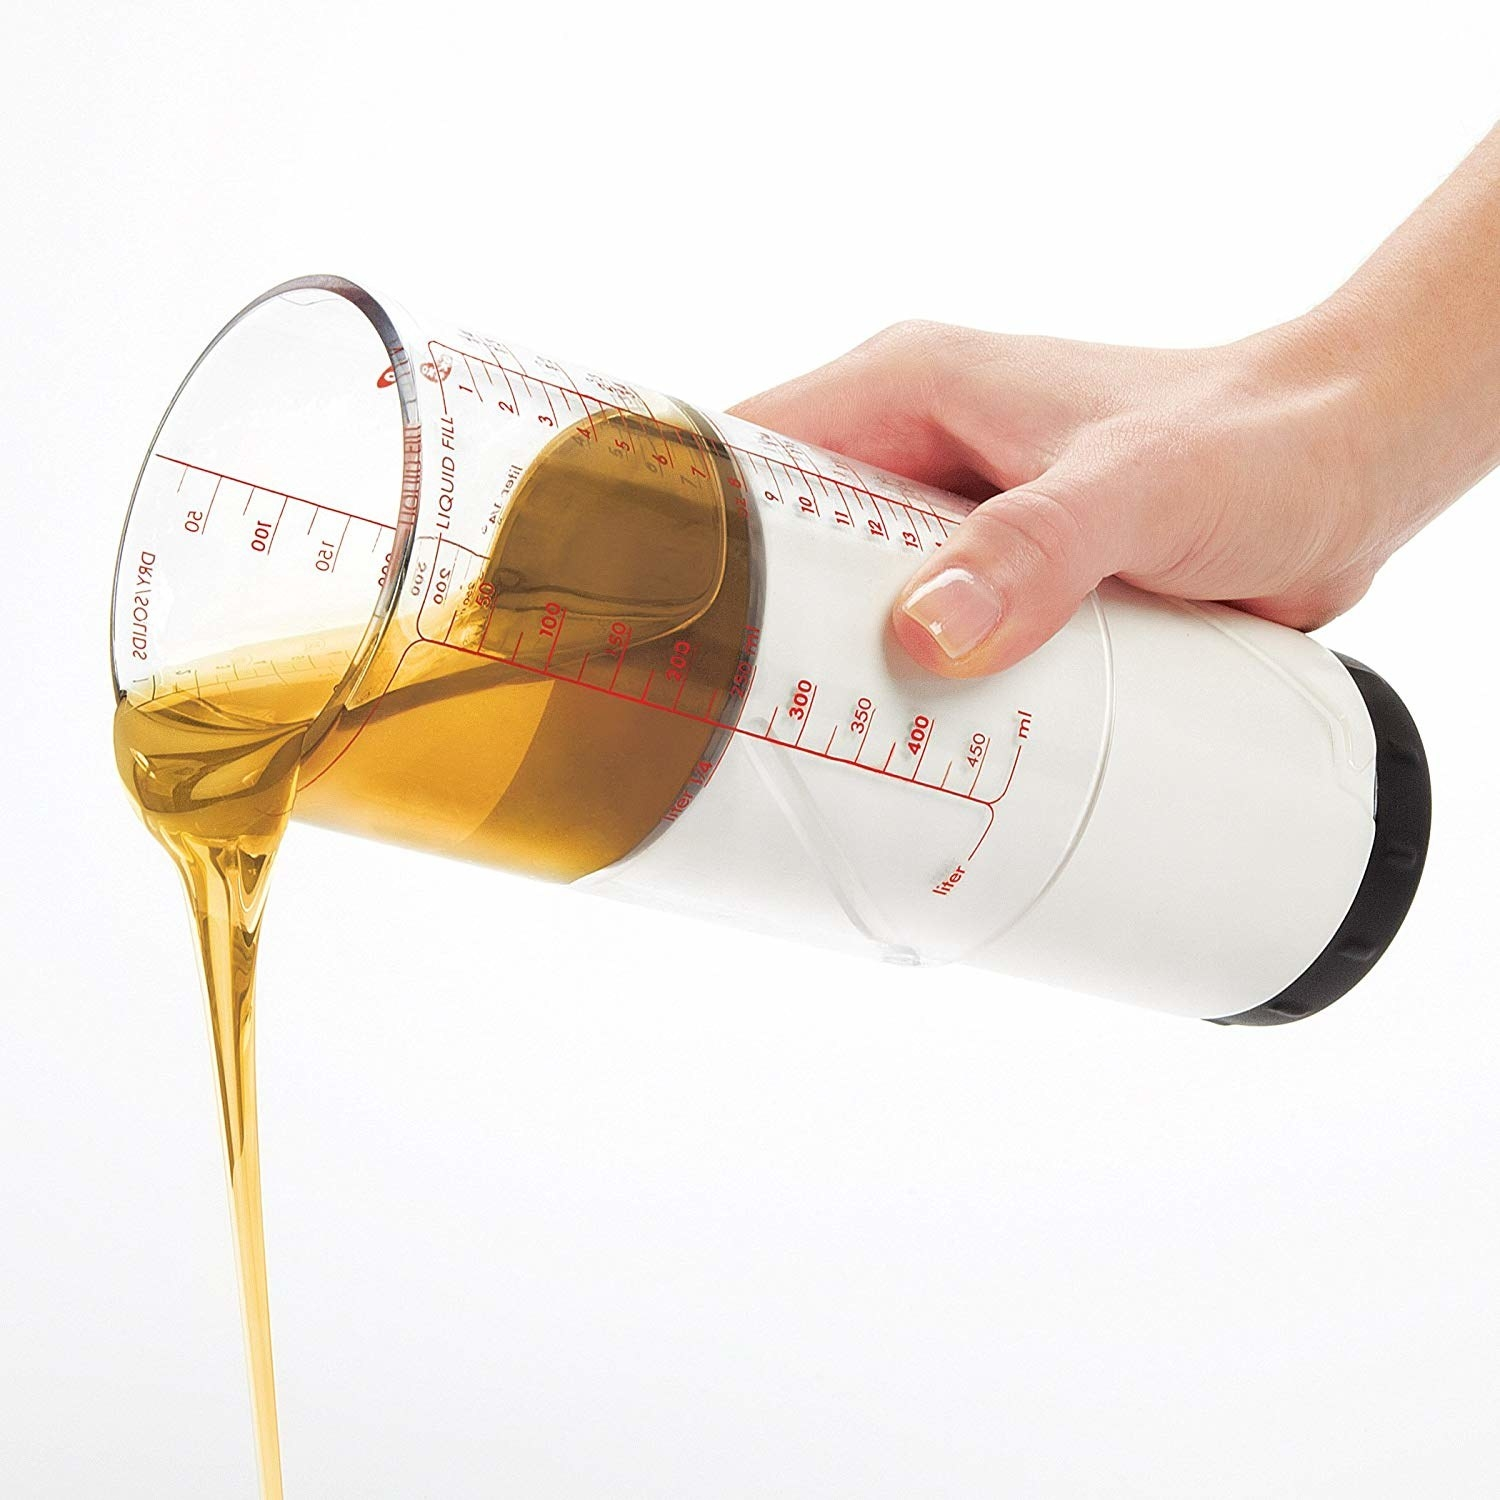 the measuring cup pouring out olive oil